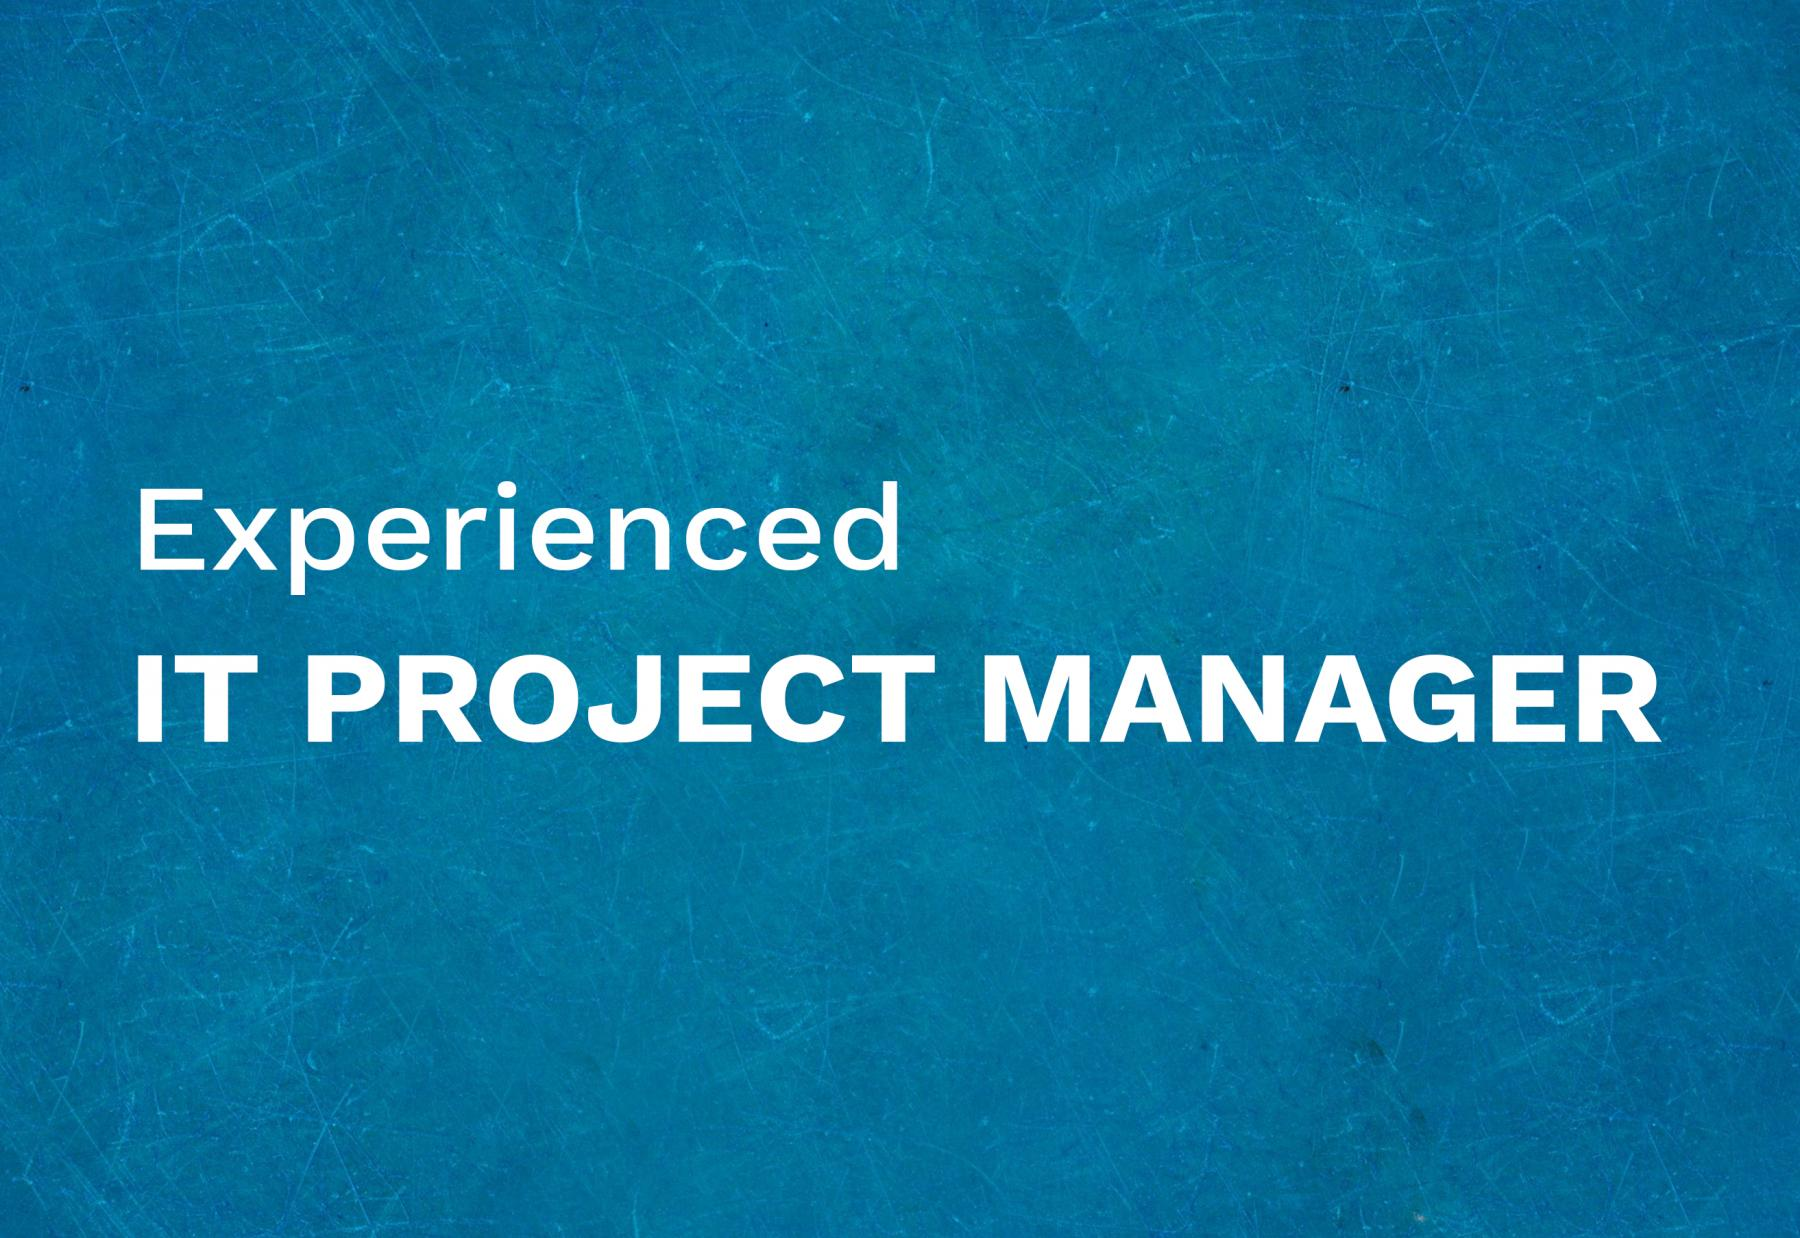 IT Project manager (Experienced)